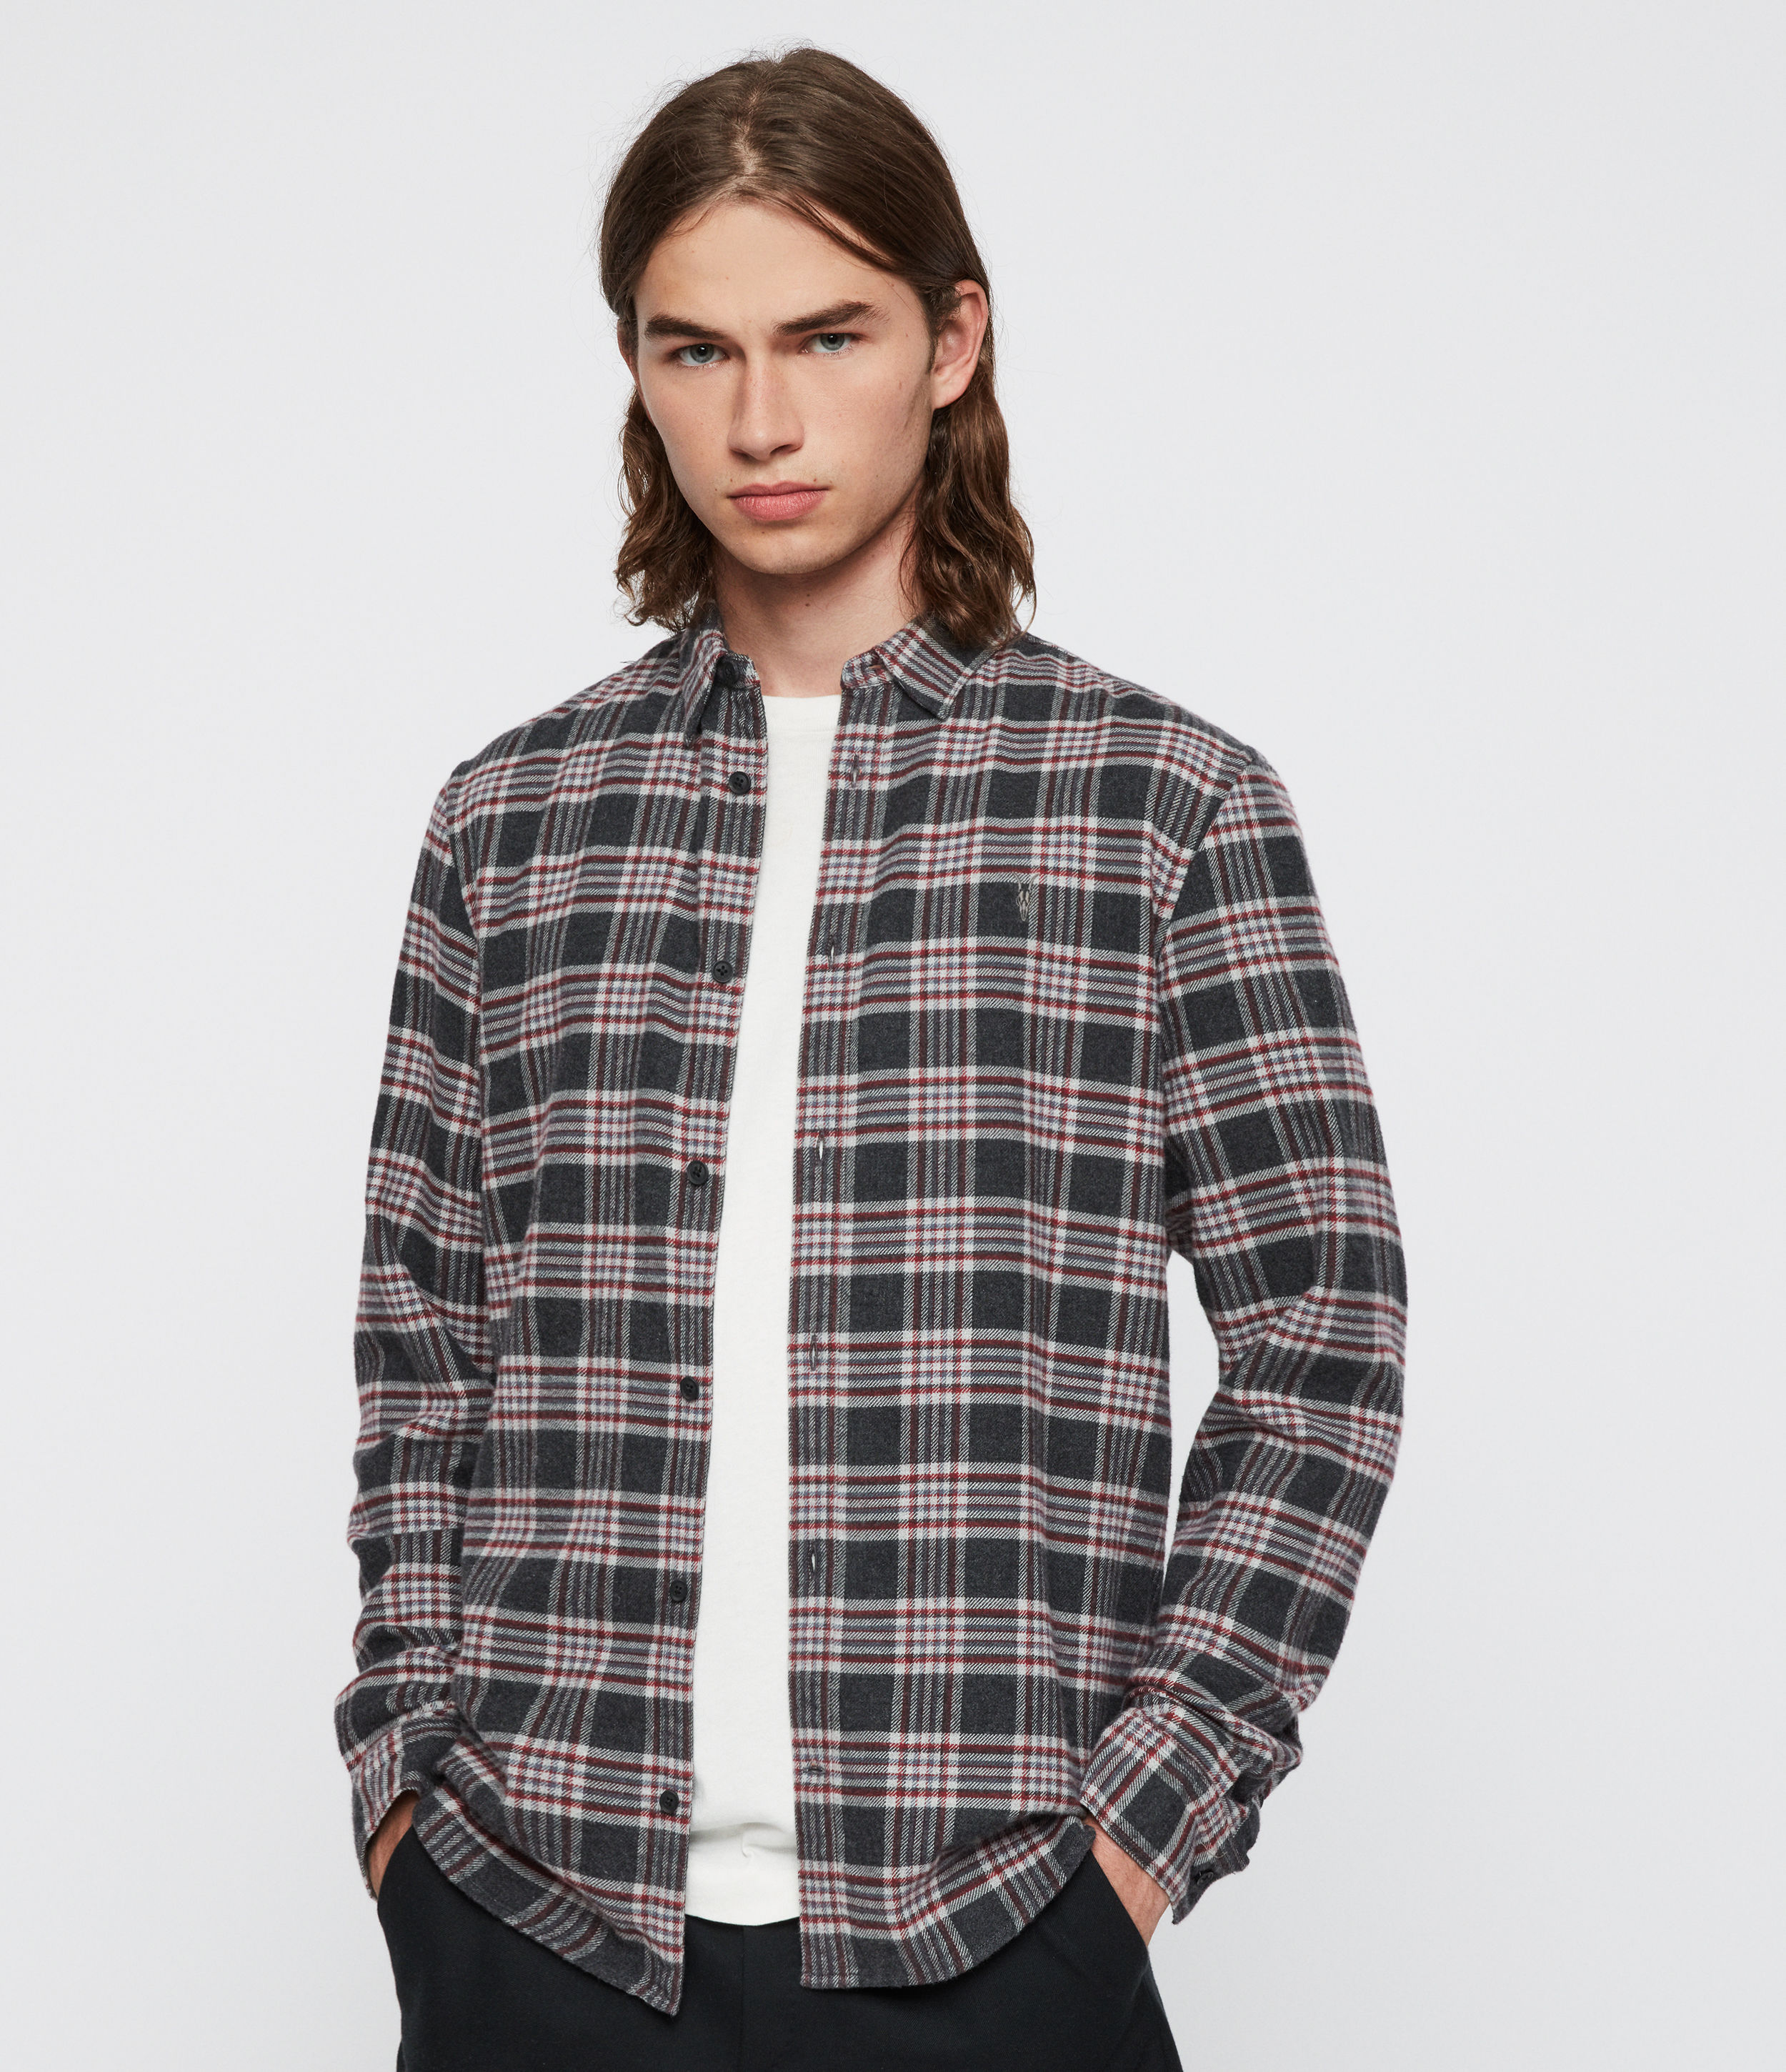 AllSaints Men's Cotton Check Slim Fit Gaines Shirt, Grey and Red, Size: S